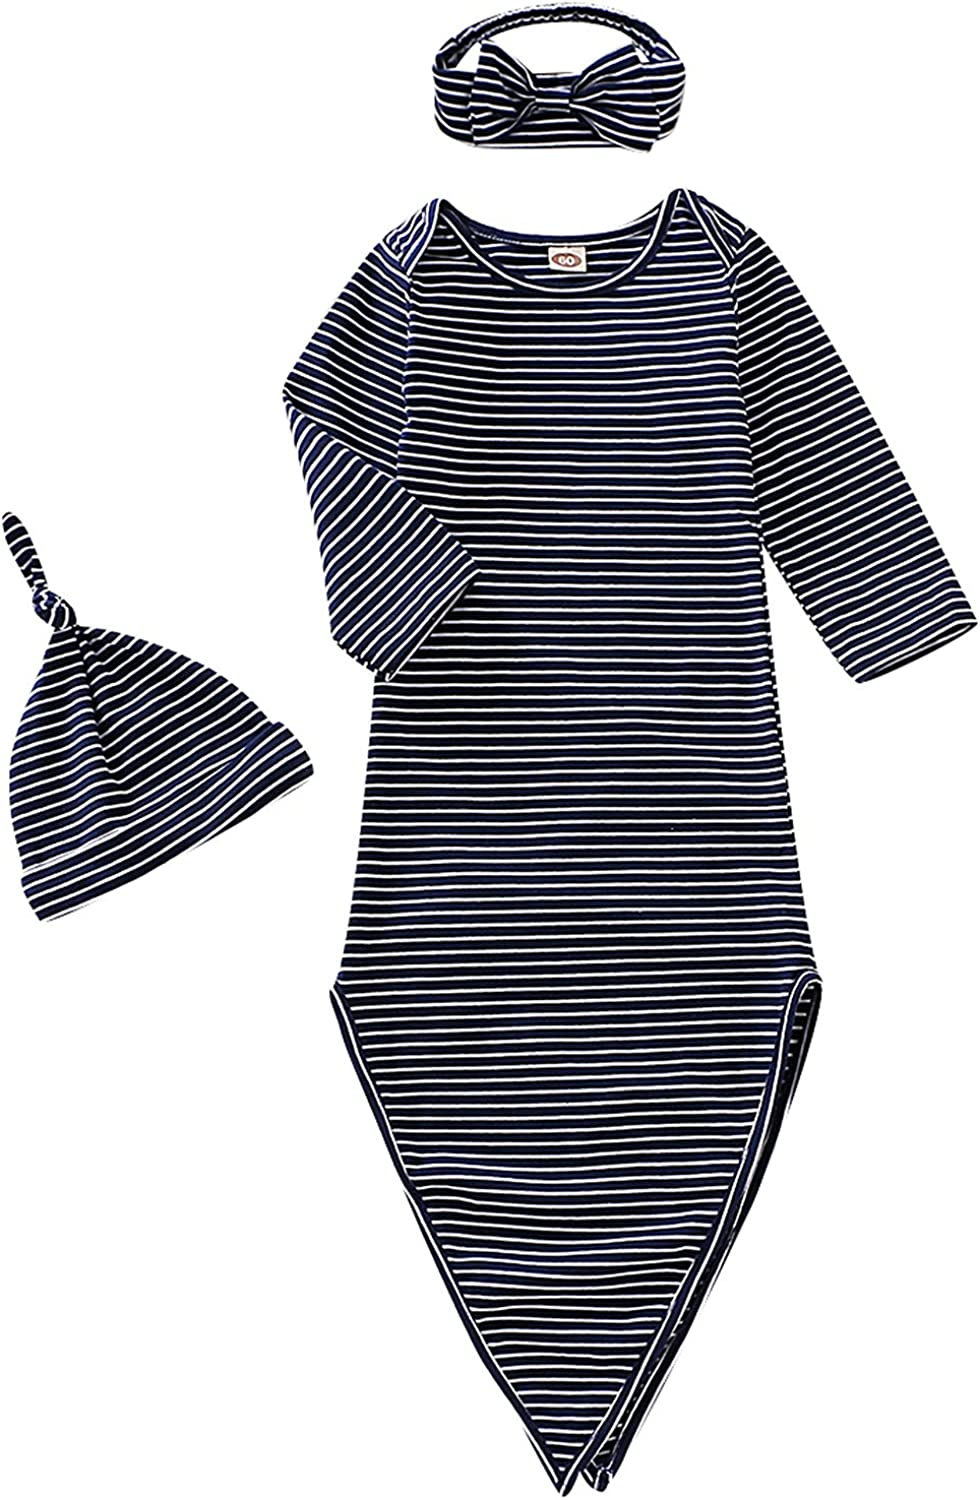 Dramiposs Newborn Boys Girls Solid Color Nightgowns Infant Long Sleeve Outfit Striped Sleeper